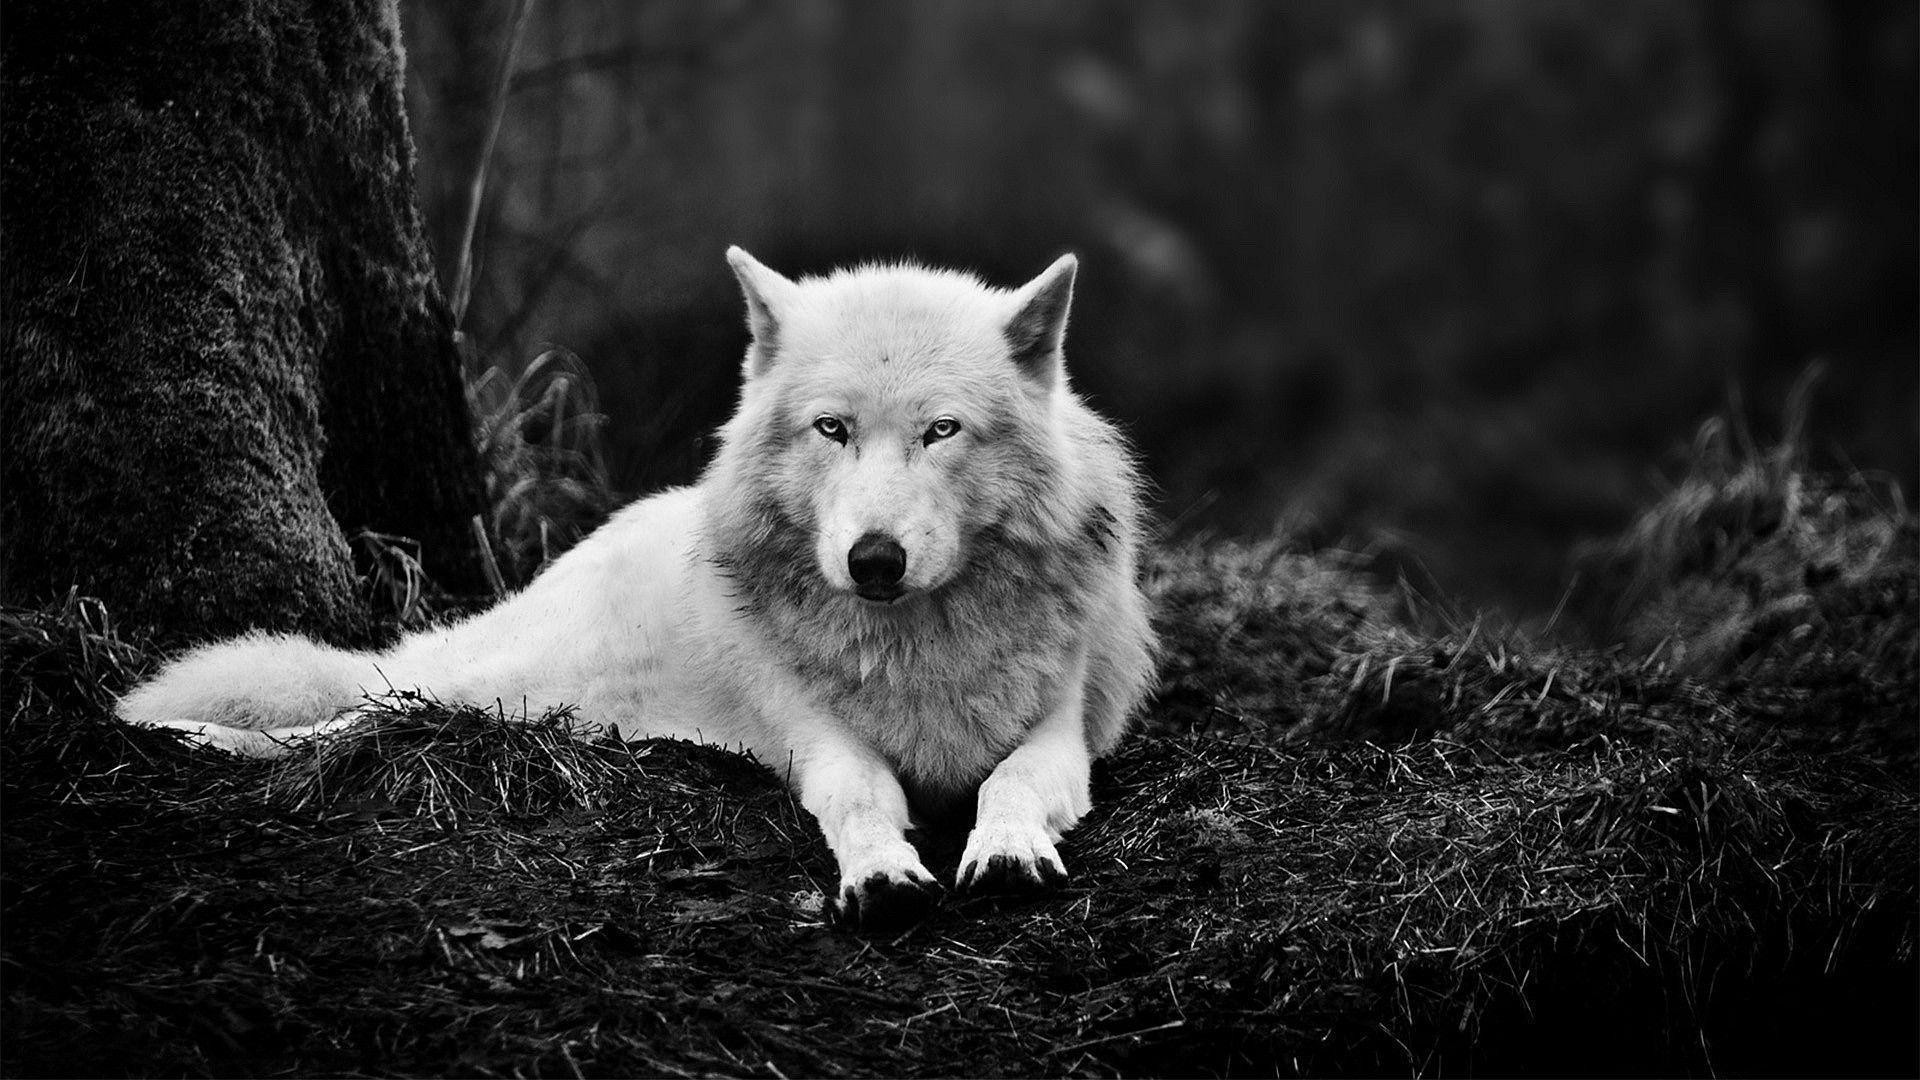 Must see Wallpaper Angry Gray Wolf - 717538-download-wallpaper-of-wolf-1920x1080-macbook  You Should Have_919338      .jpg